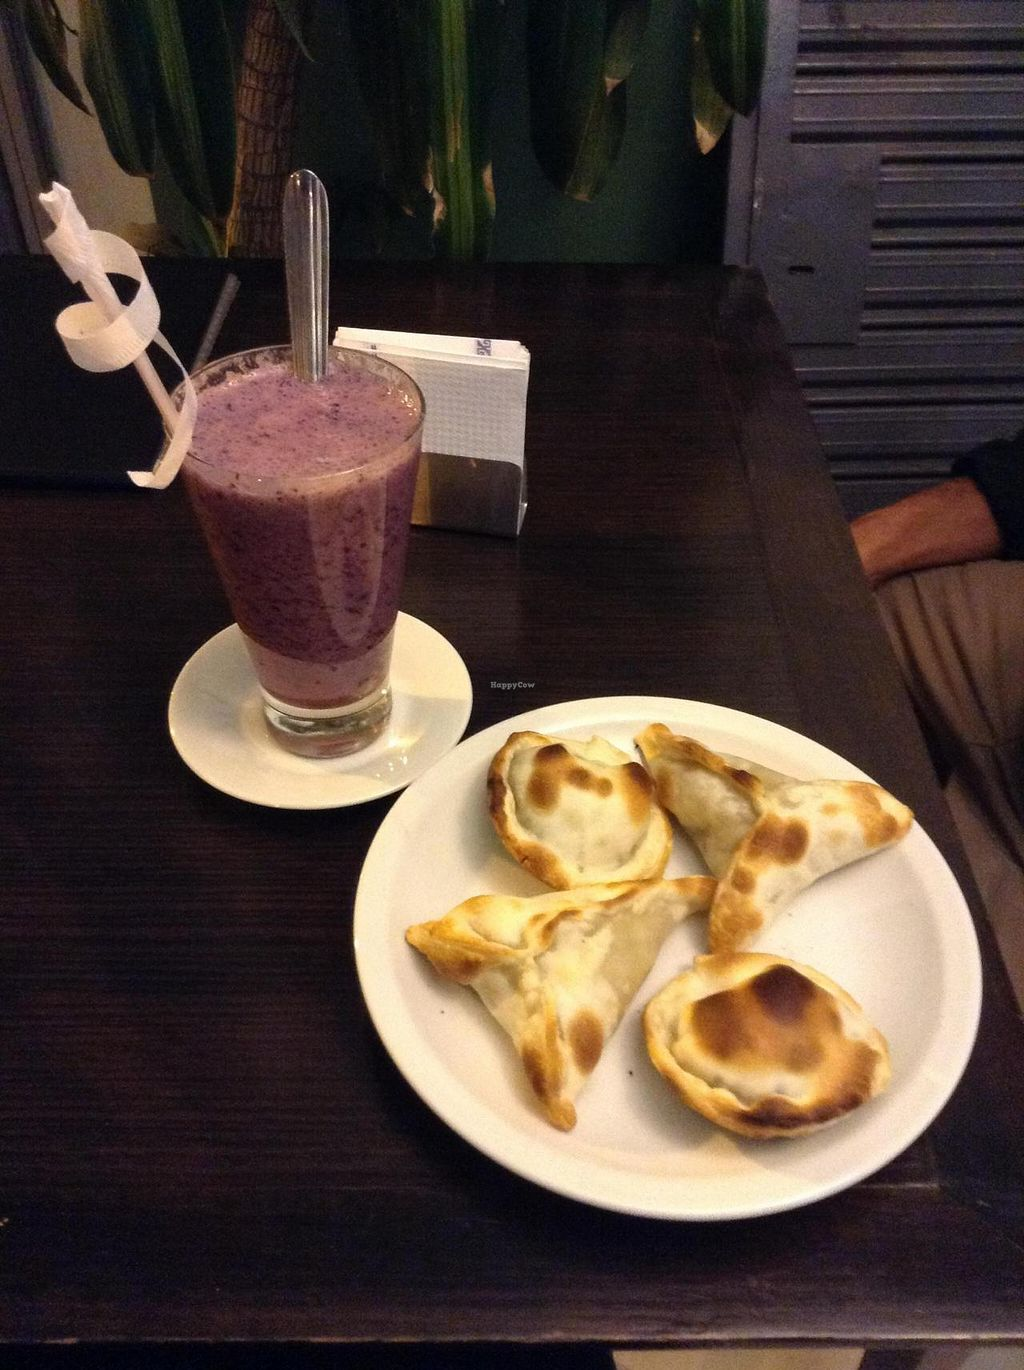 "Photo of CLOSED: Morelia  by <a href=""/members/profile/eeyoresenigma"">eeyoresenigma</a> <br/>One of their numerous delicious shakes and fresh made empanadas <br/> October 21, 2014  - <a href='/contact/abuse/image/30721/83545'>Report</a>"